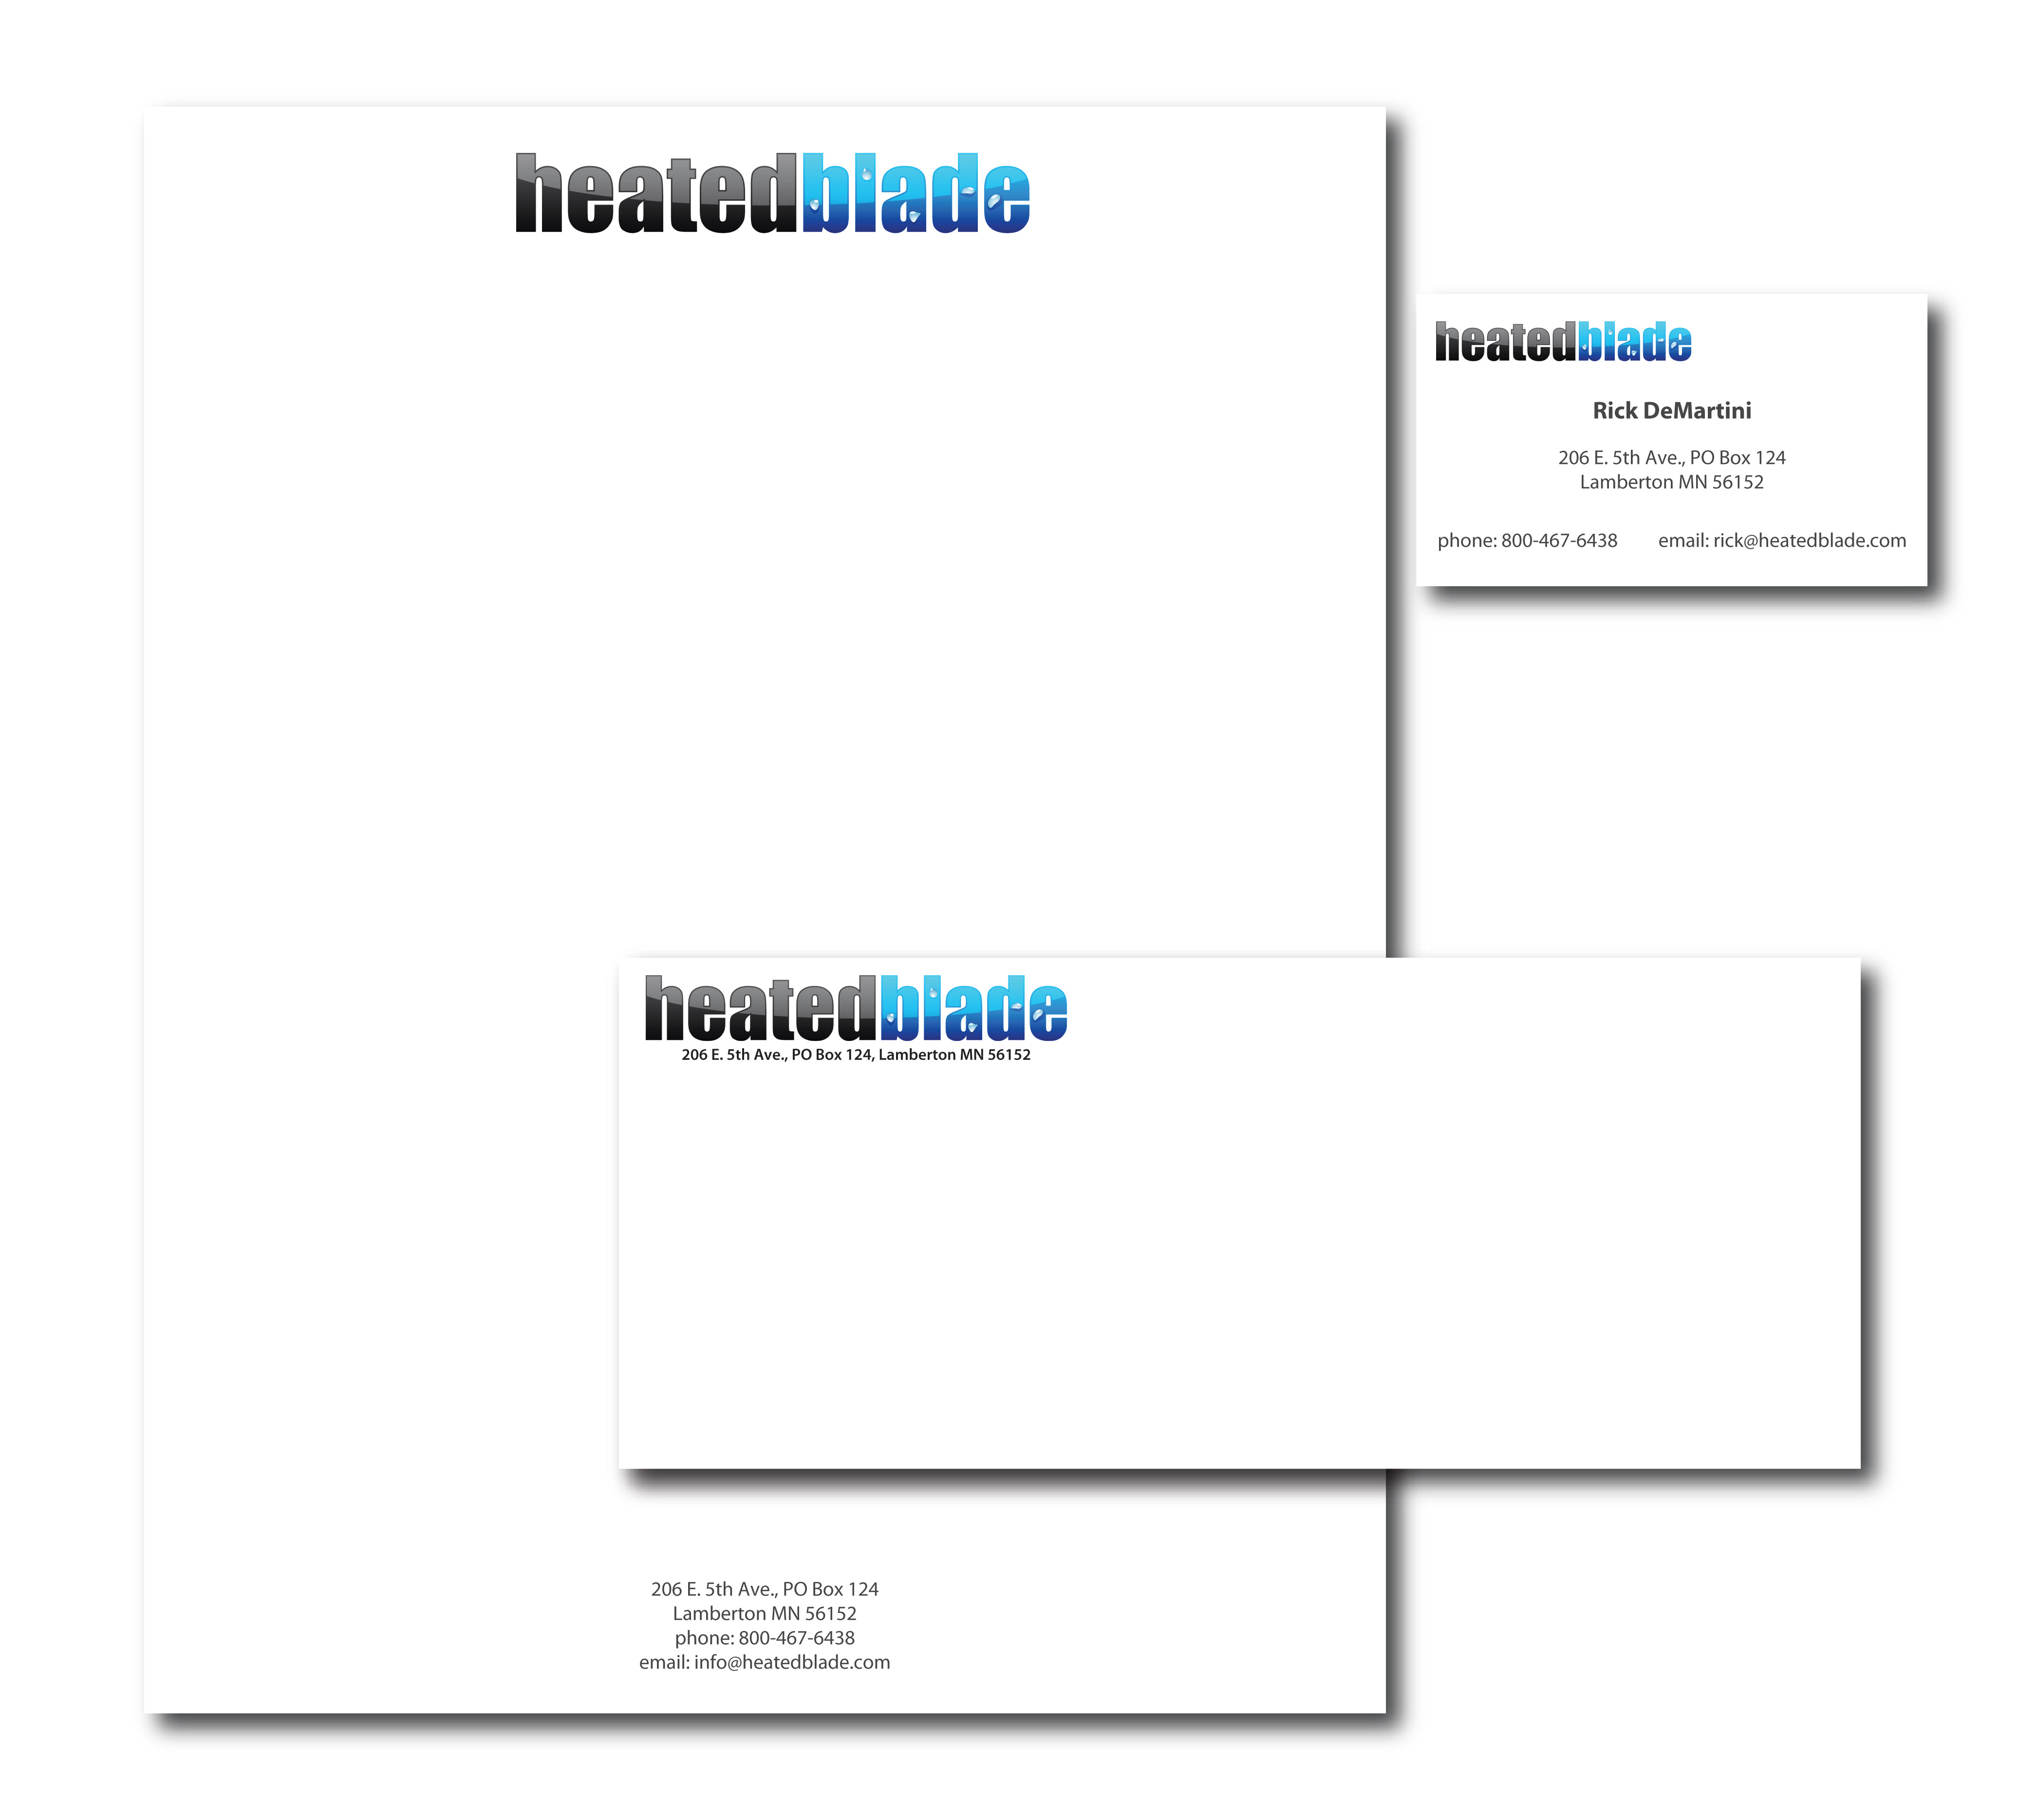 Company letterhead shefftunes company letterhead thecheapjerseys Image collections